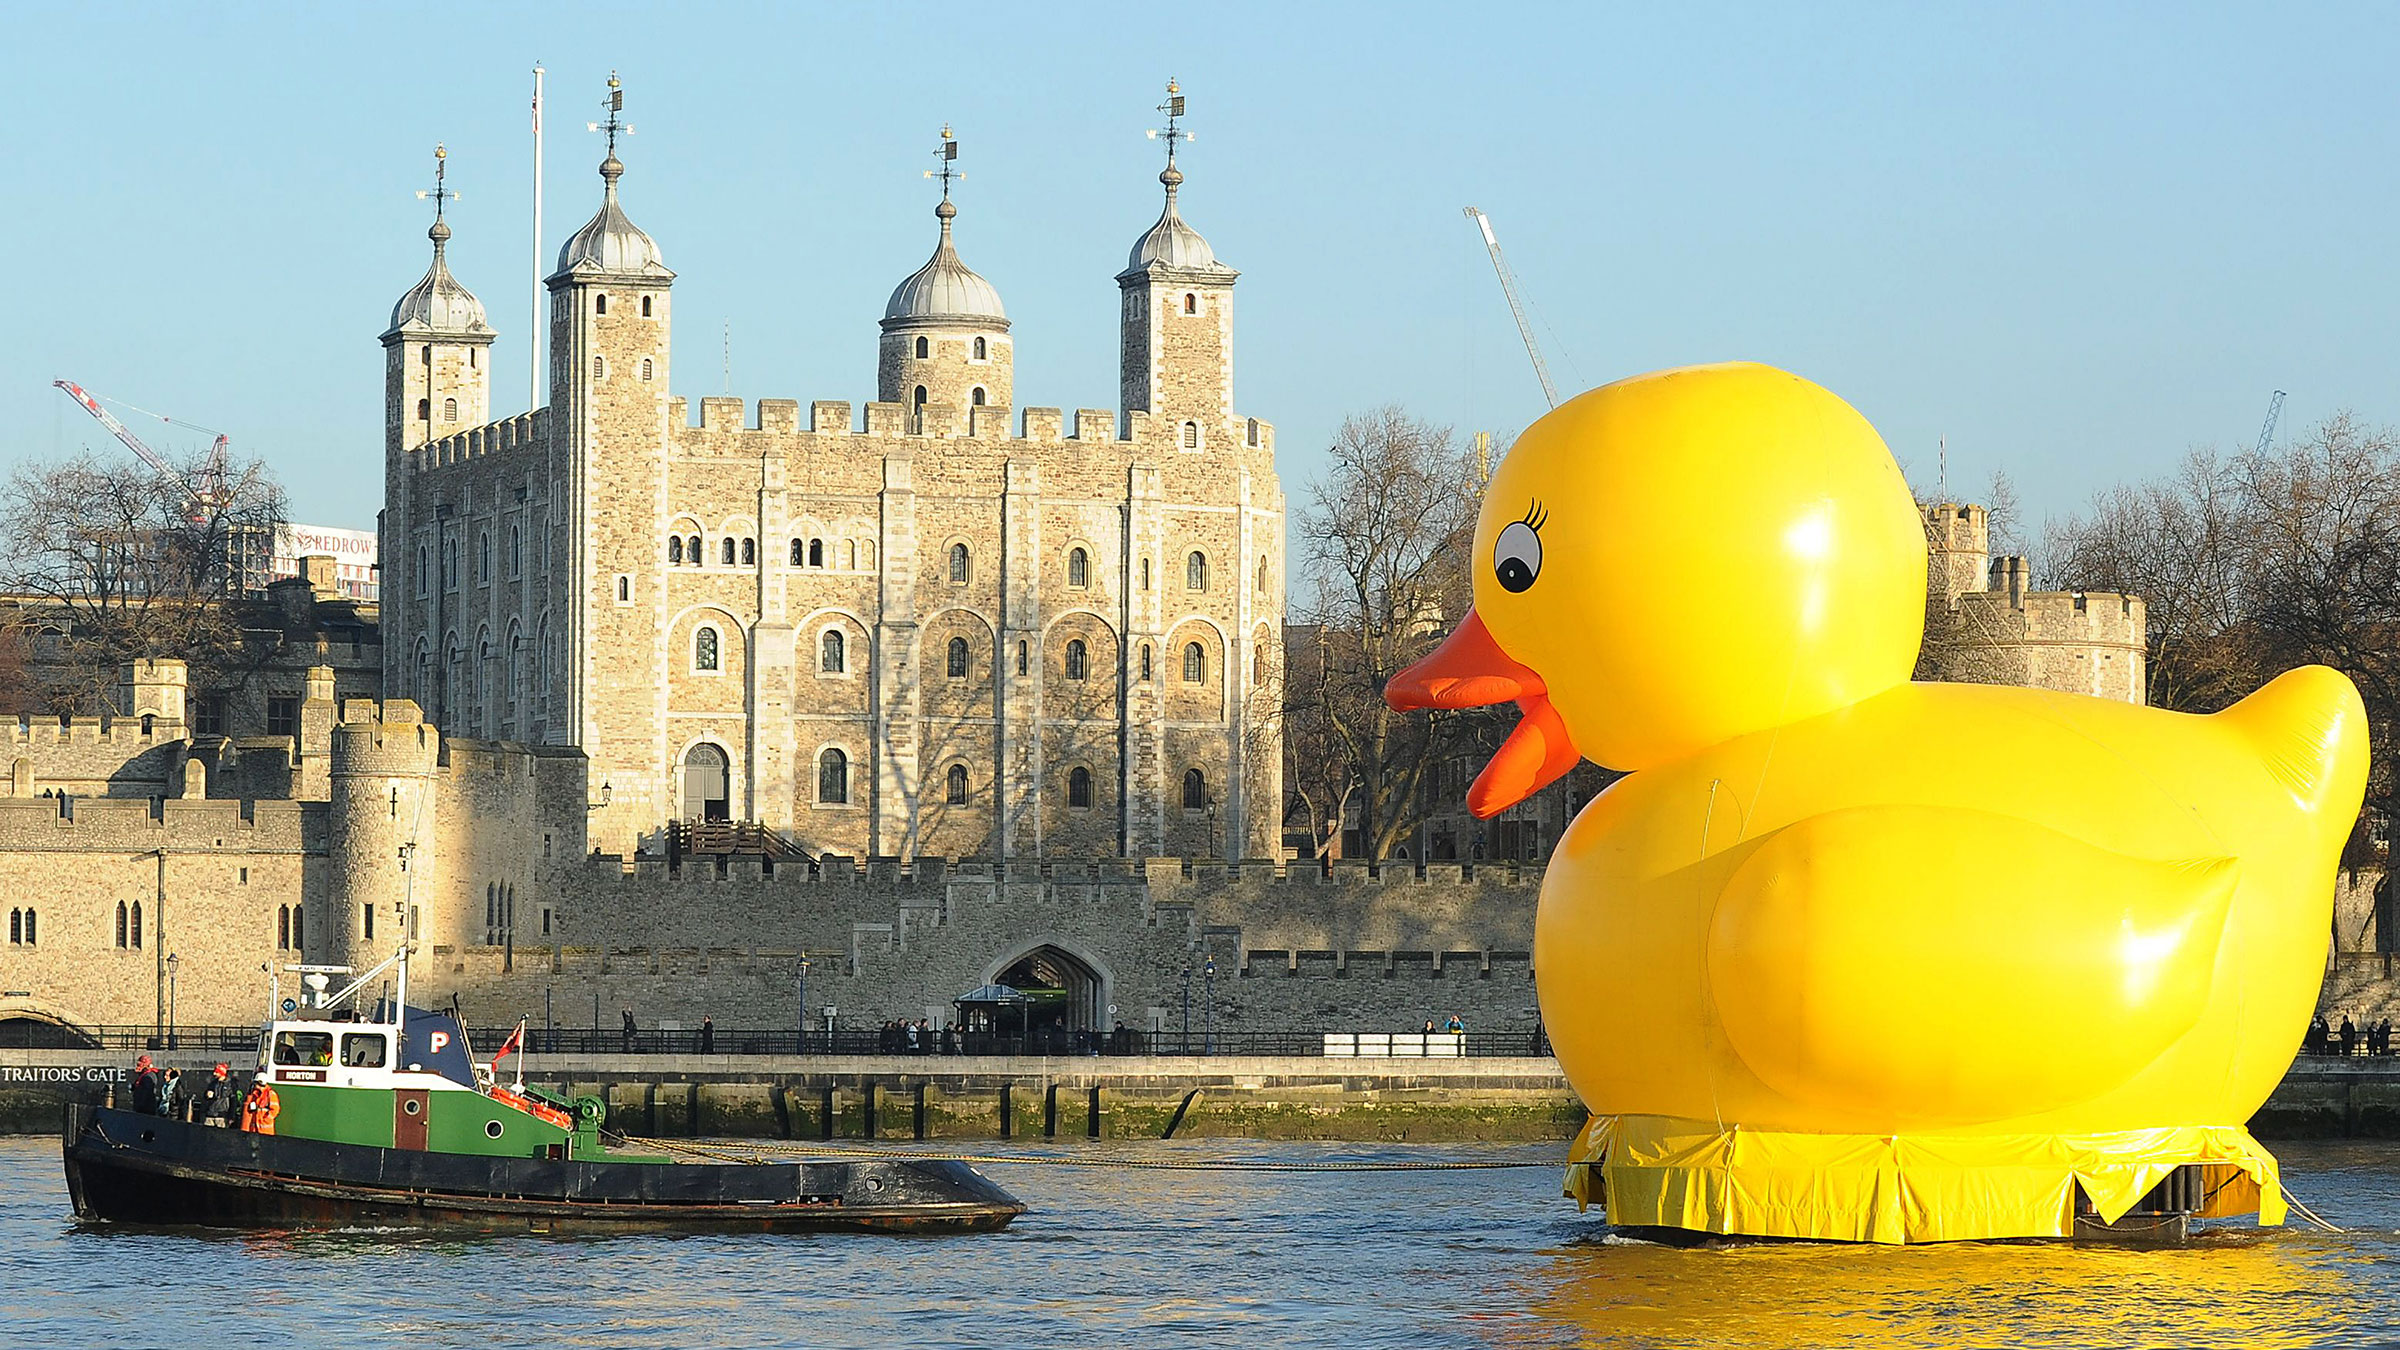 Giant yellow duck on the Thames River